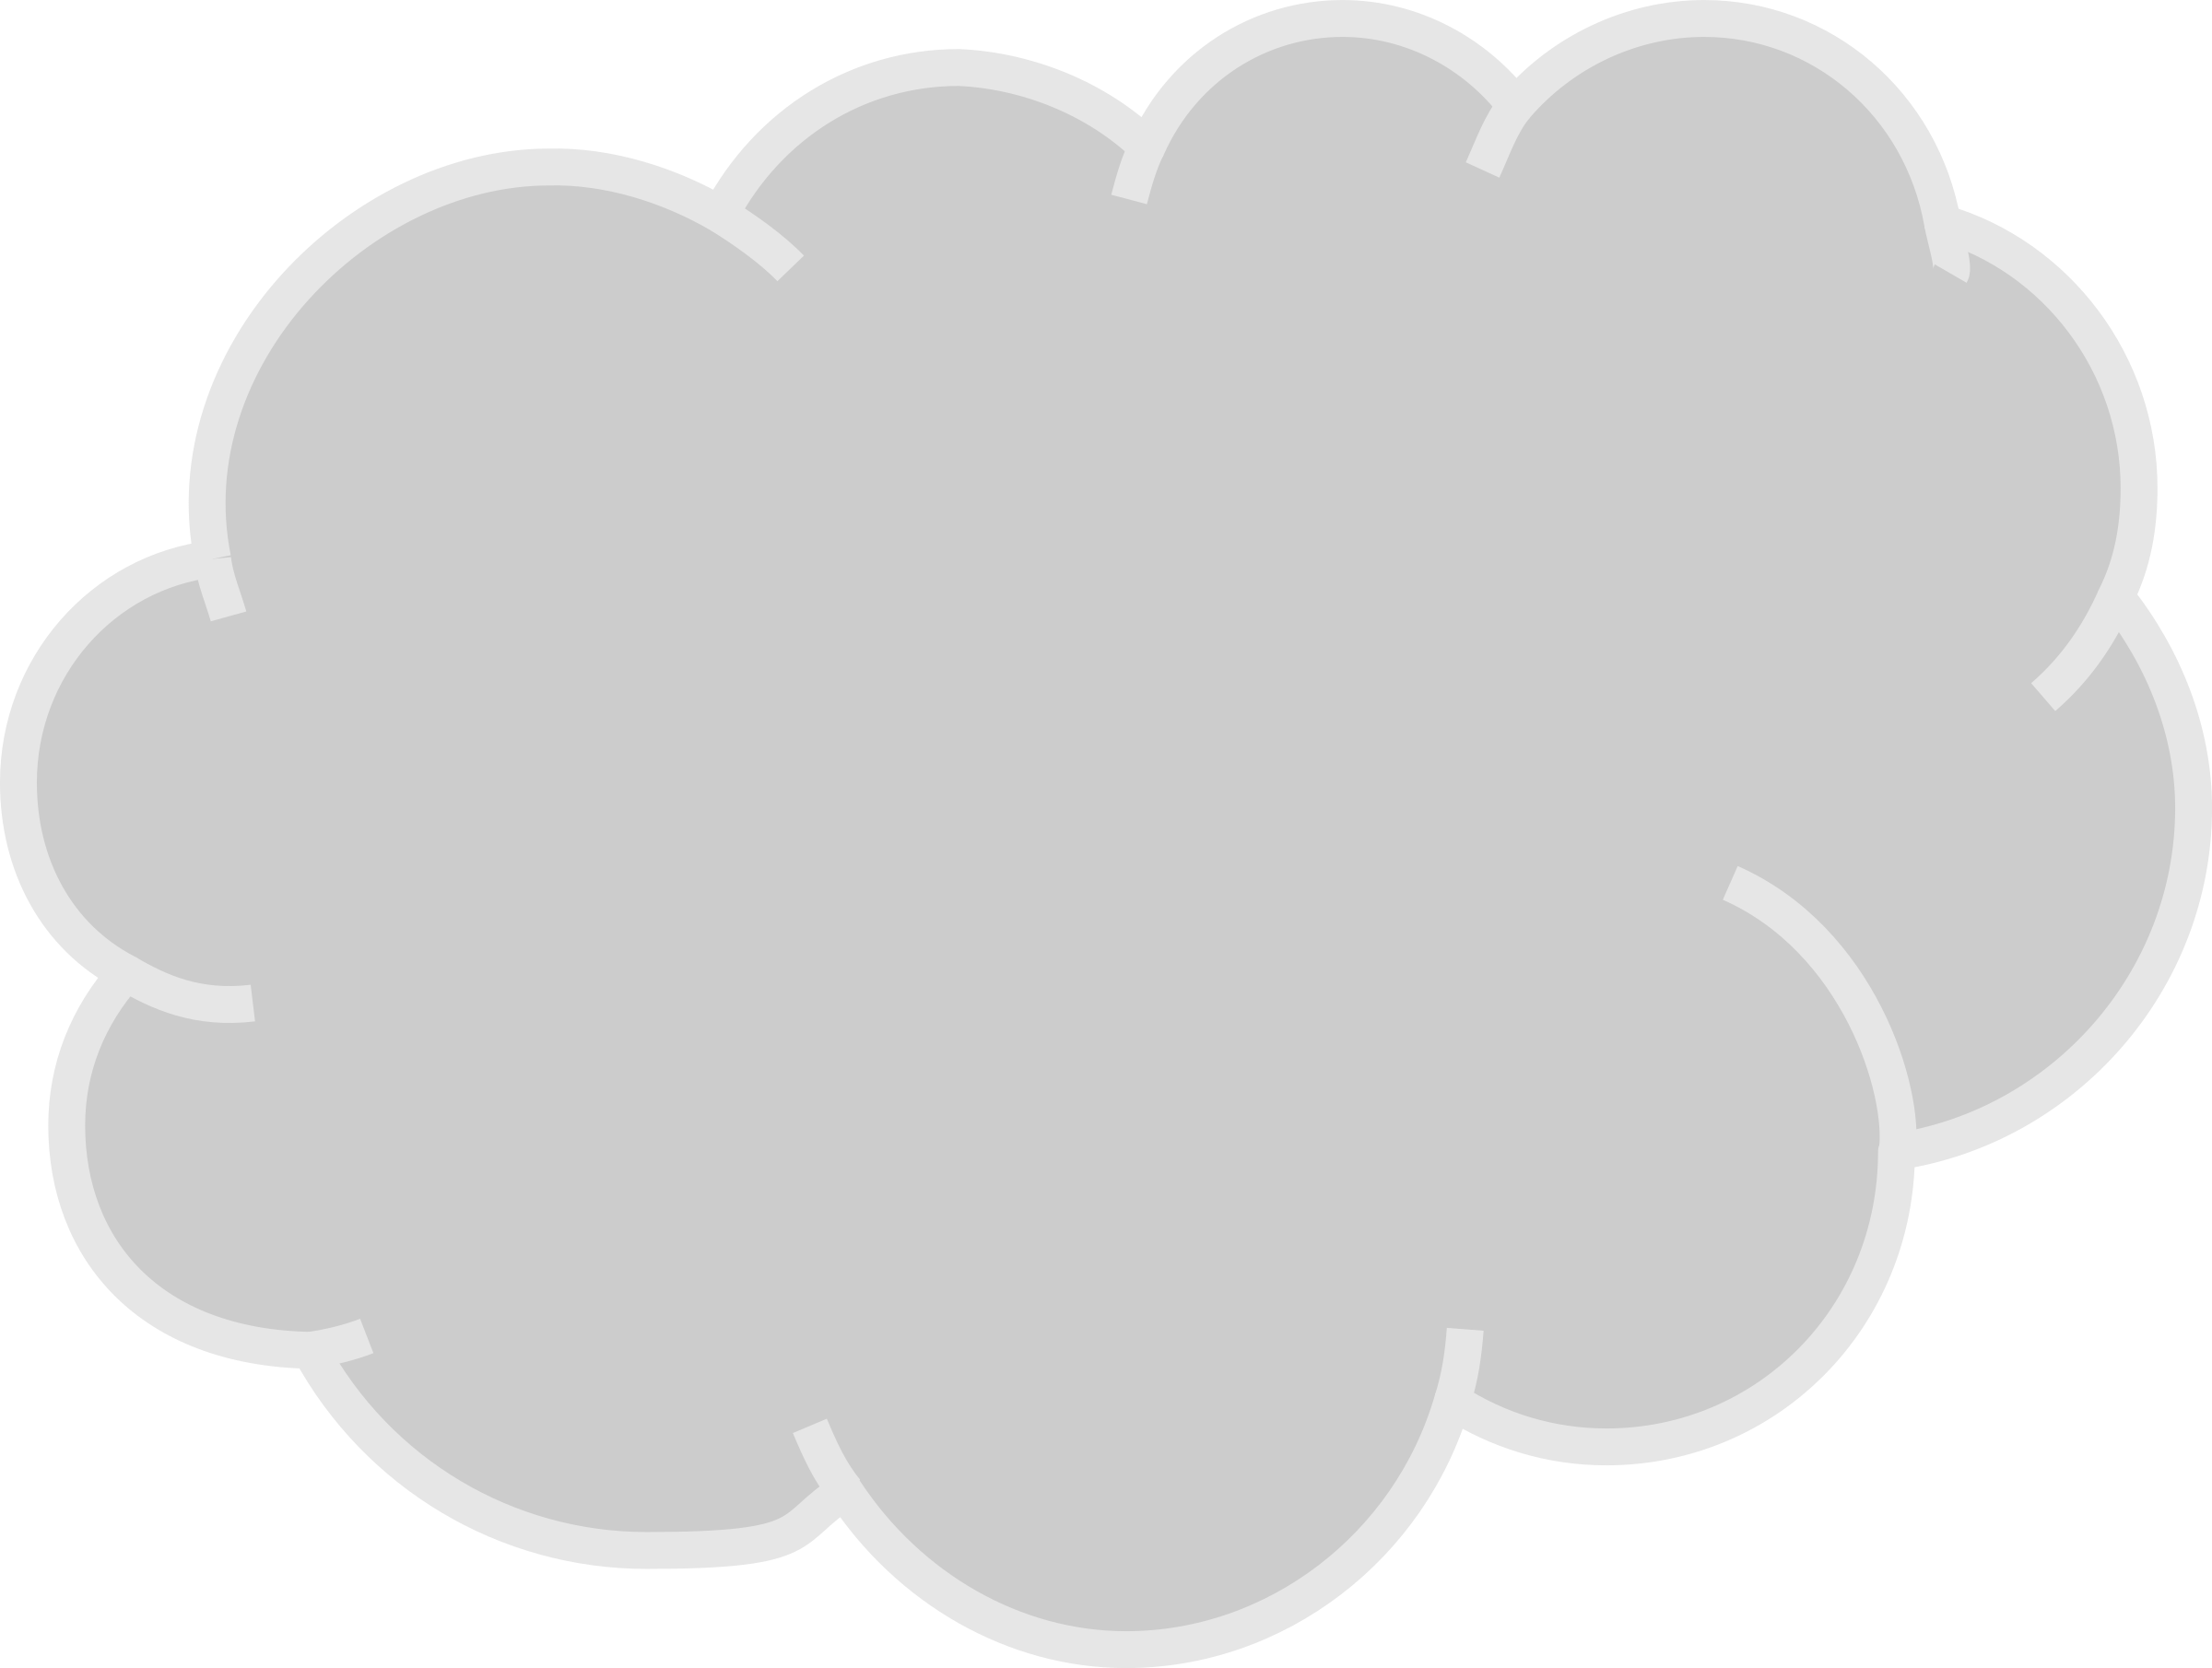 Gray and white cloud clipart 2